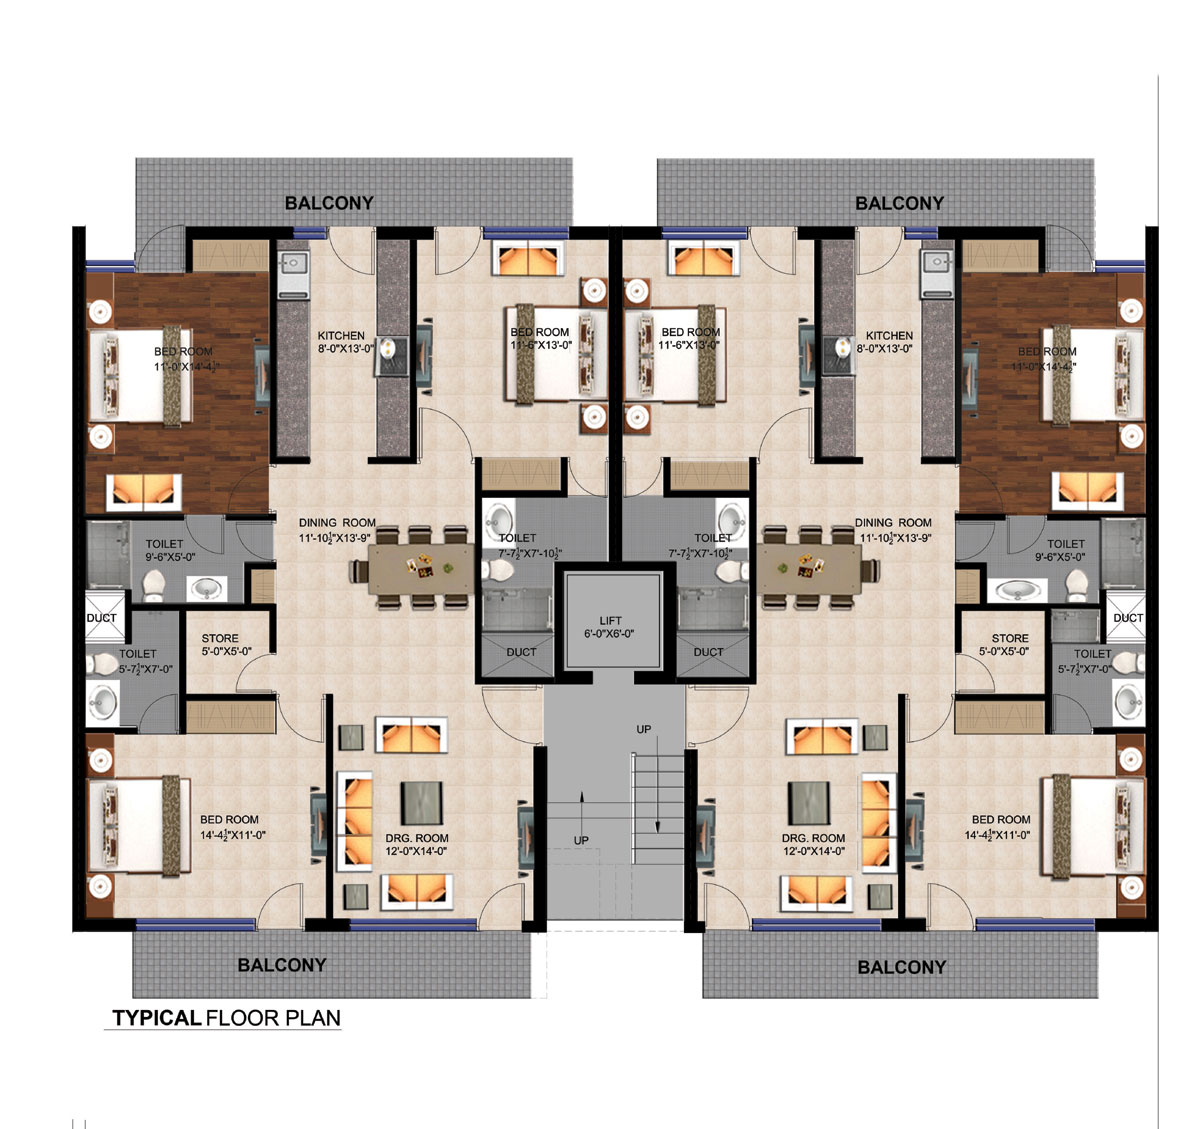 PALM APARTMENTS Manohar Singh  Co Independent Floors in Mullanpur NewChandigarh  Real